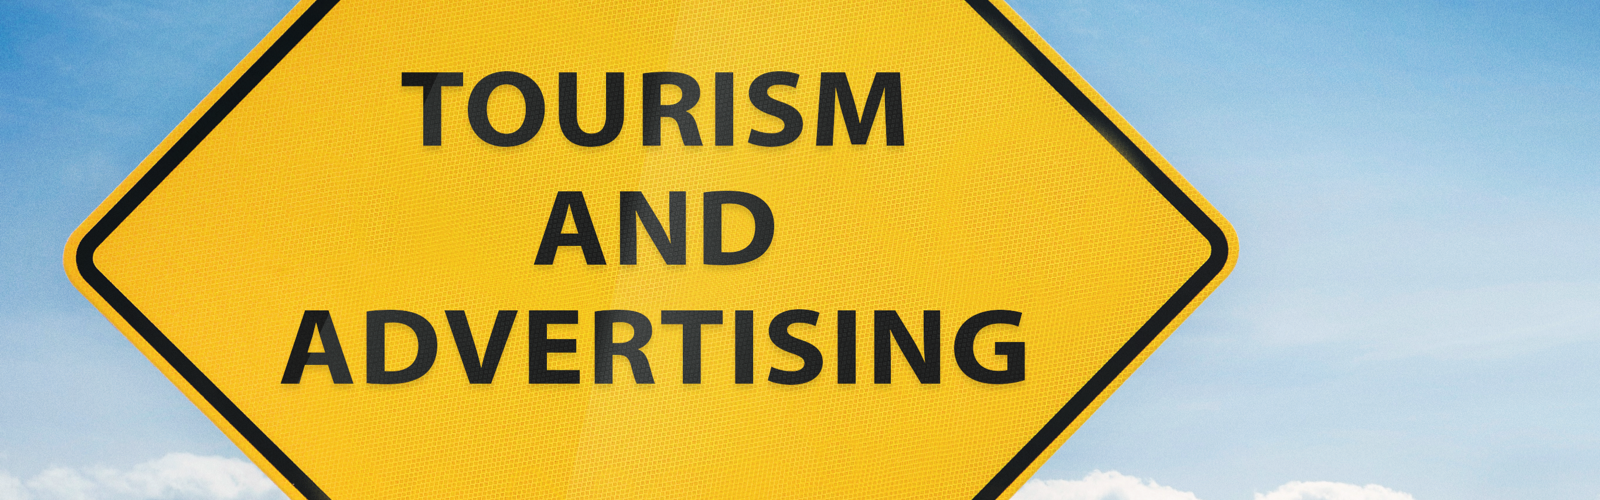 Tourism and Advertising Sign